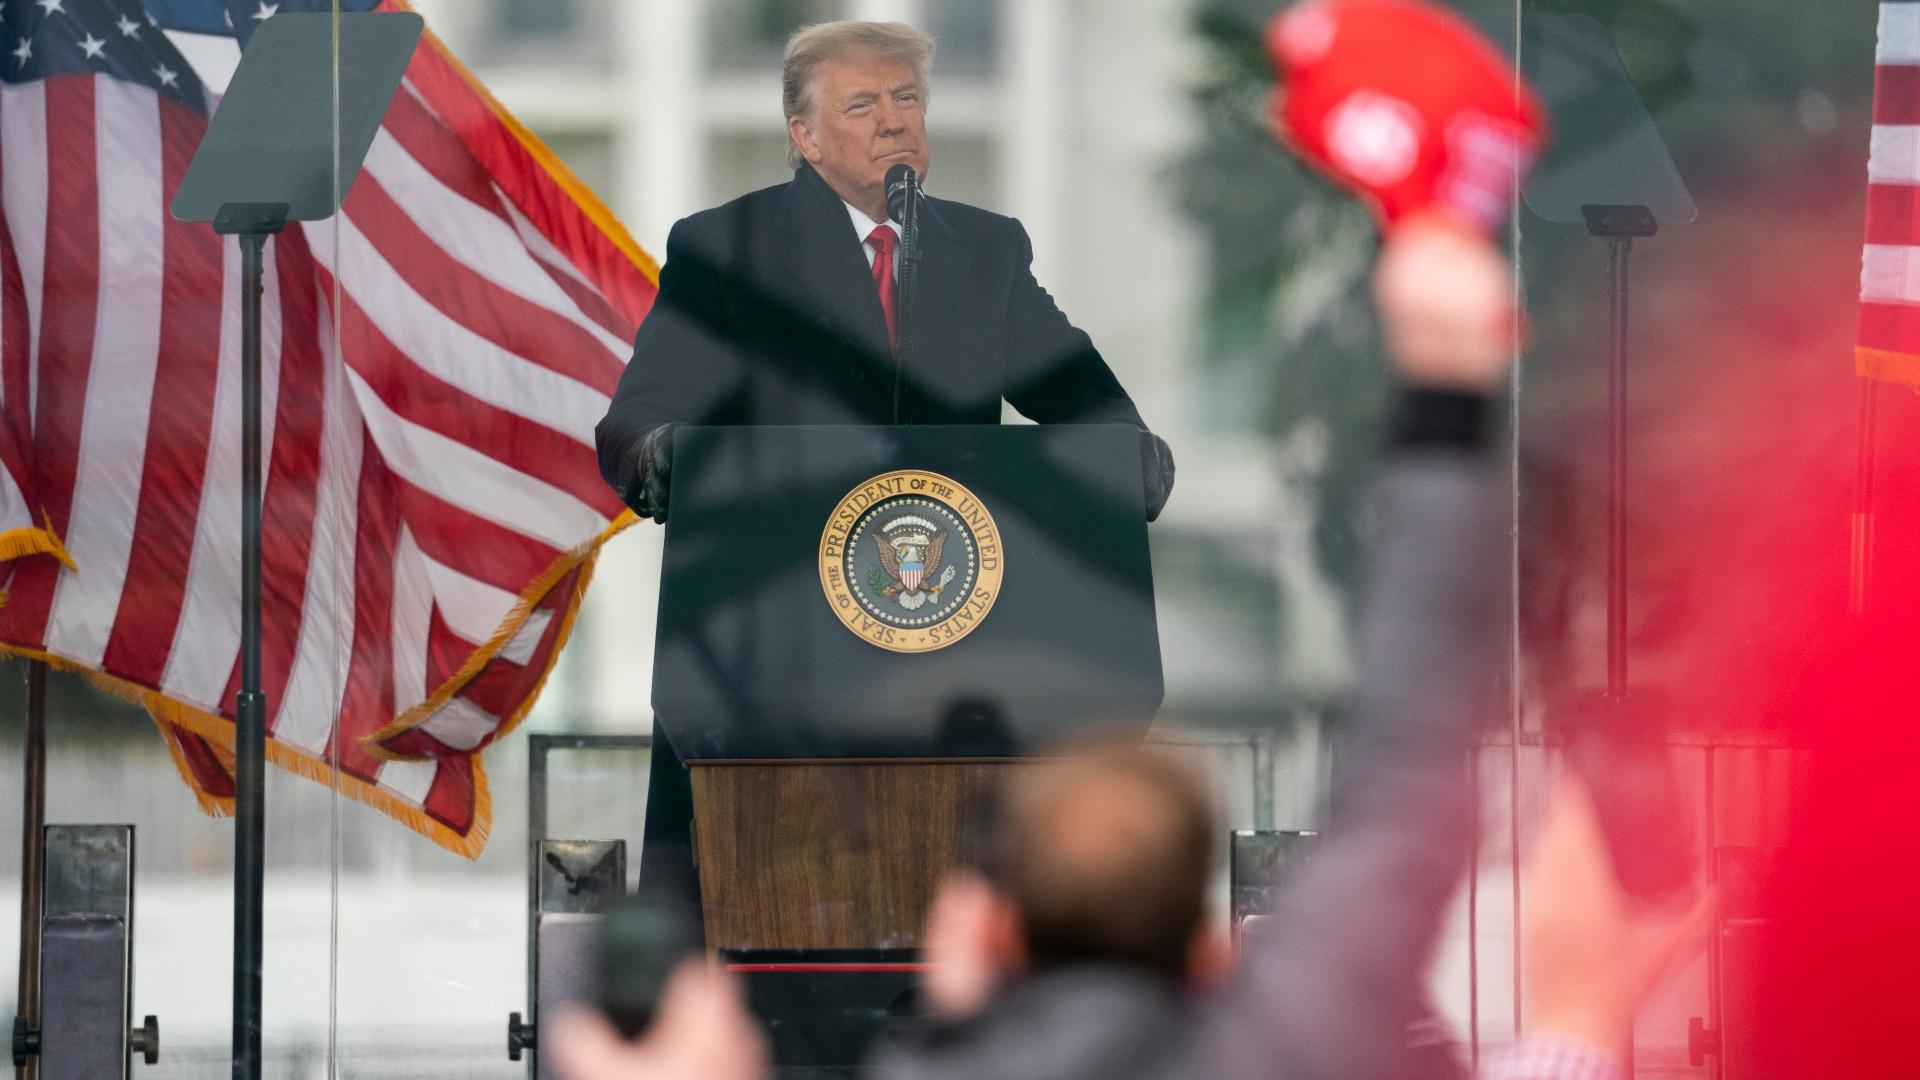 President Donald Trump speaks during a rally protesting the electoral college certification of Joe Biden as President, Wednesday, Jan. 6, 2021, in Washington. (AP Photo / Evan Vucci)